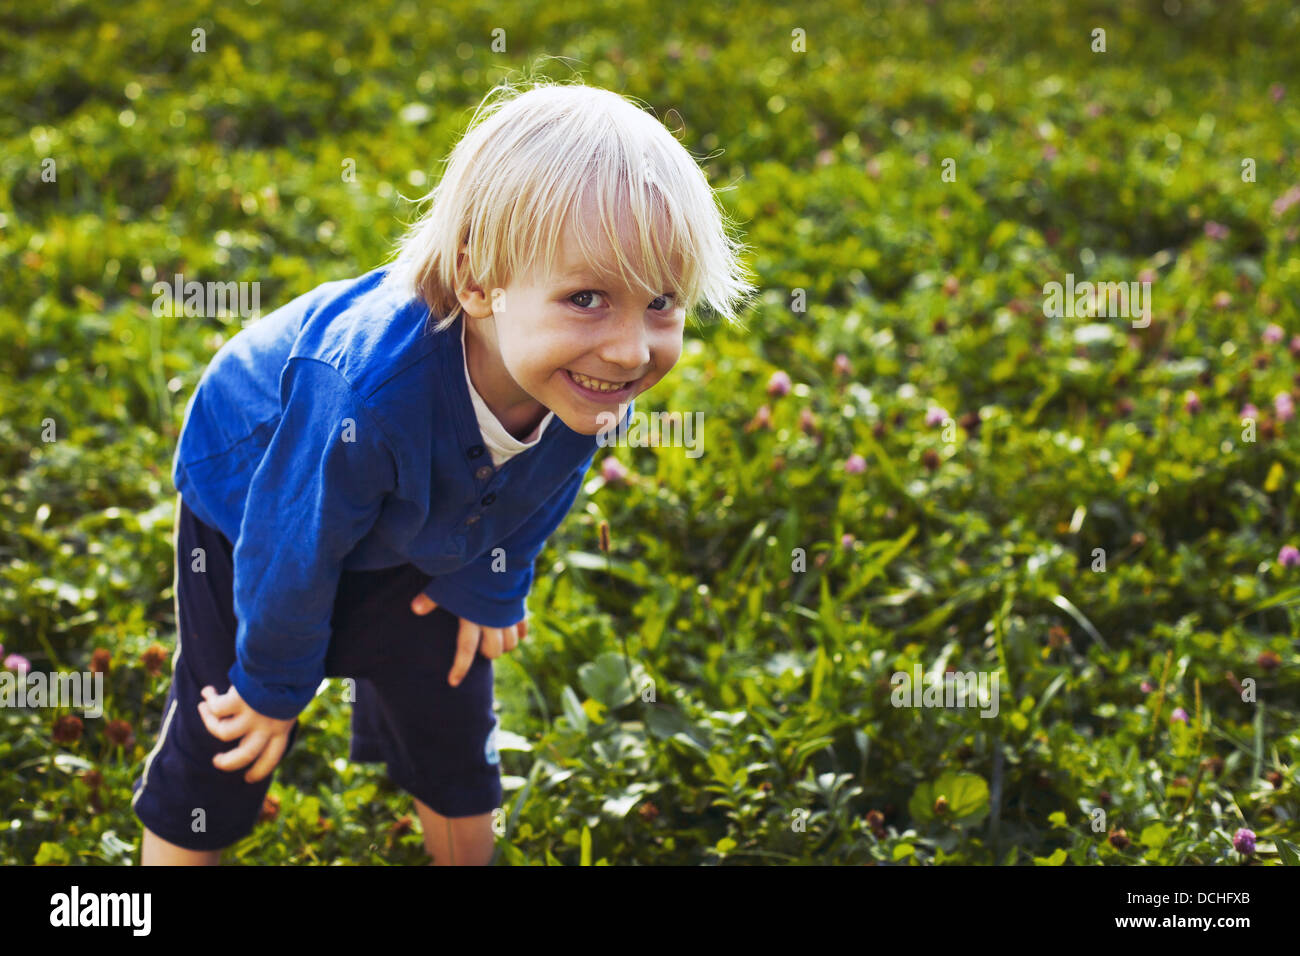 Crafty cute little boy outdoors, portrait of smiling child Photo Stock